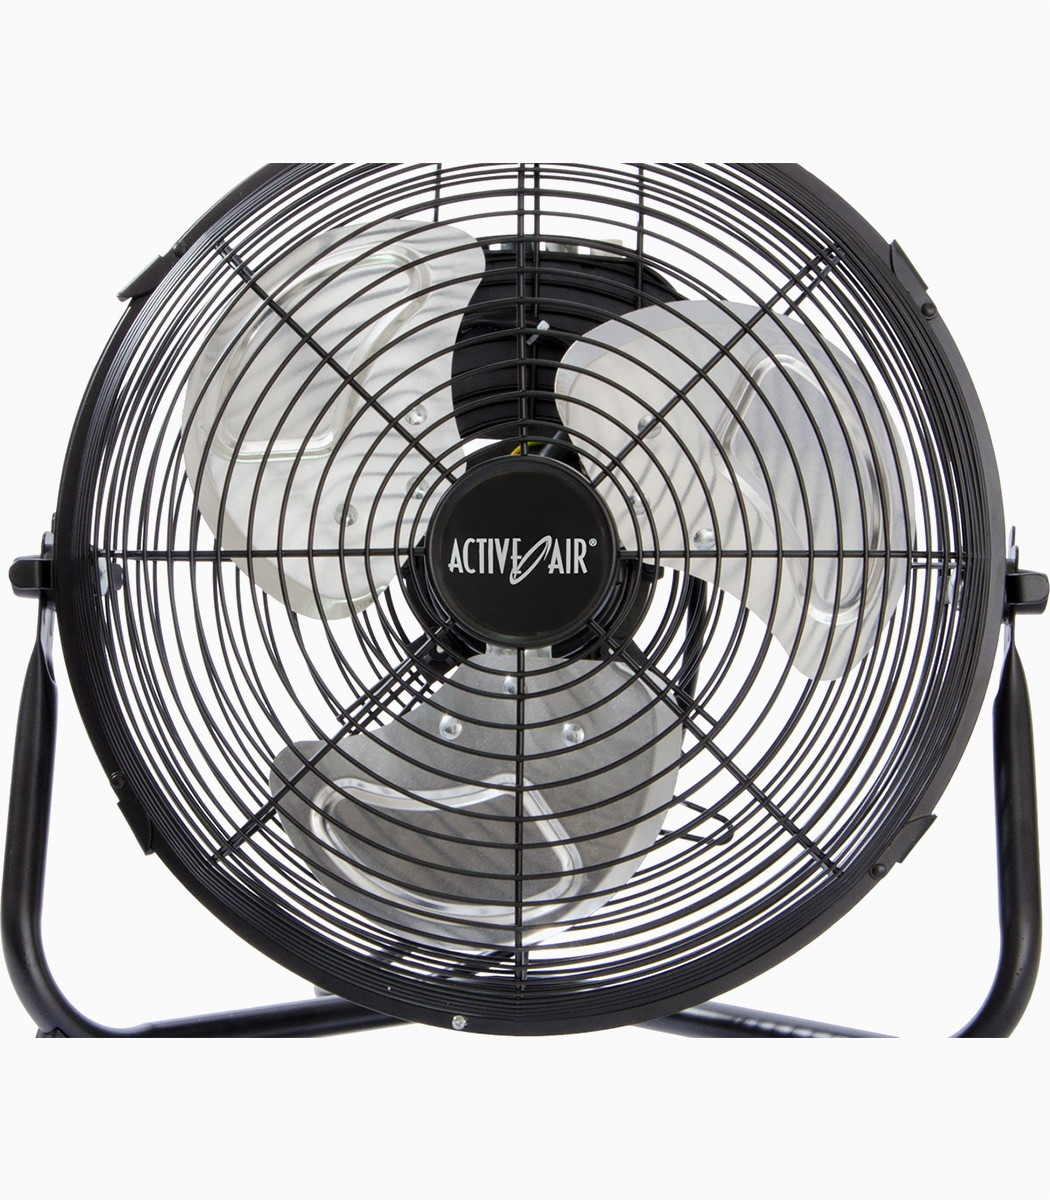 Floor Fans With Light : Active air hd floor fan quot greenlightsdirect